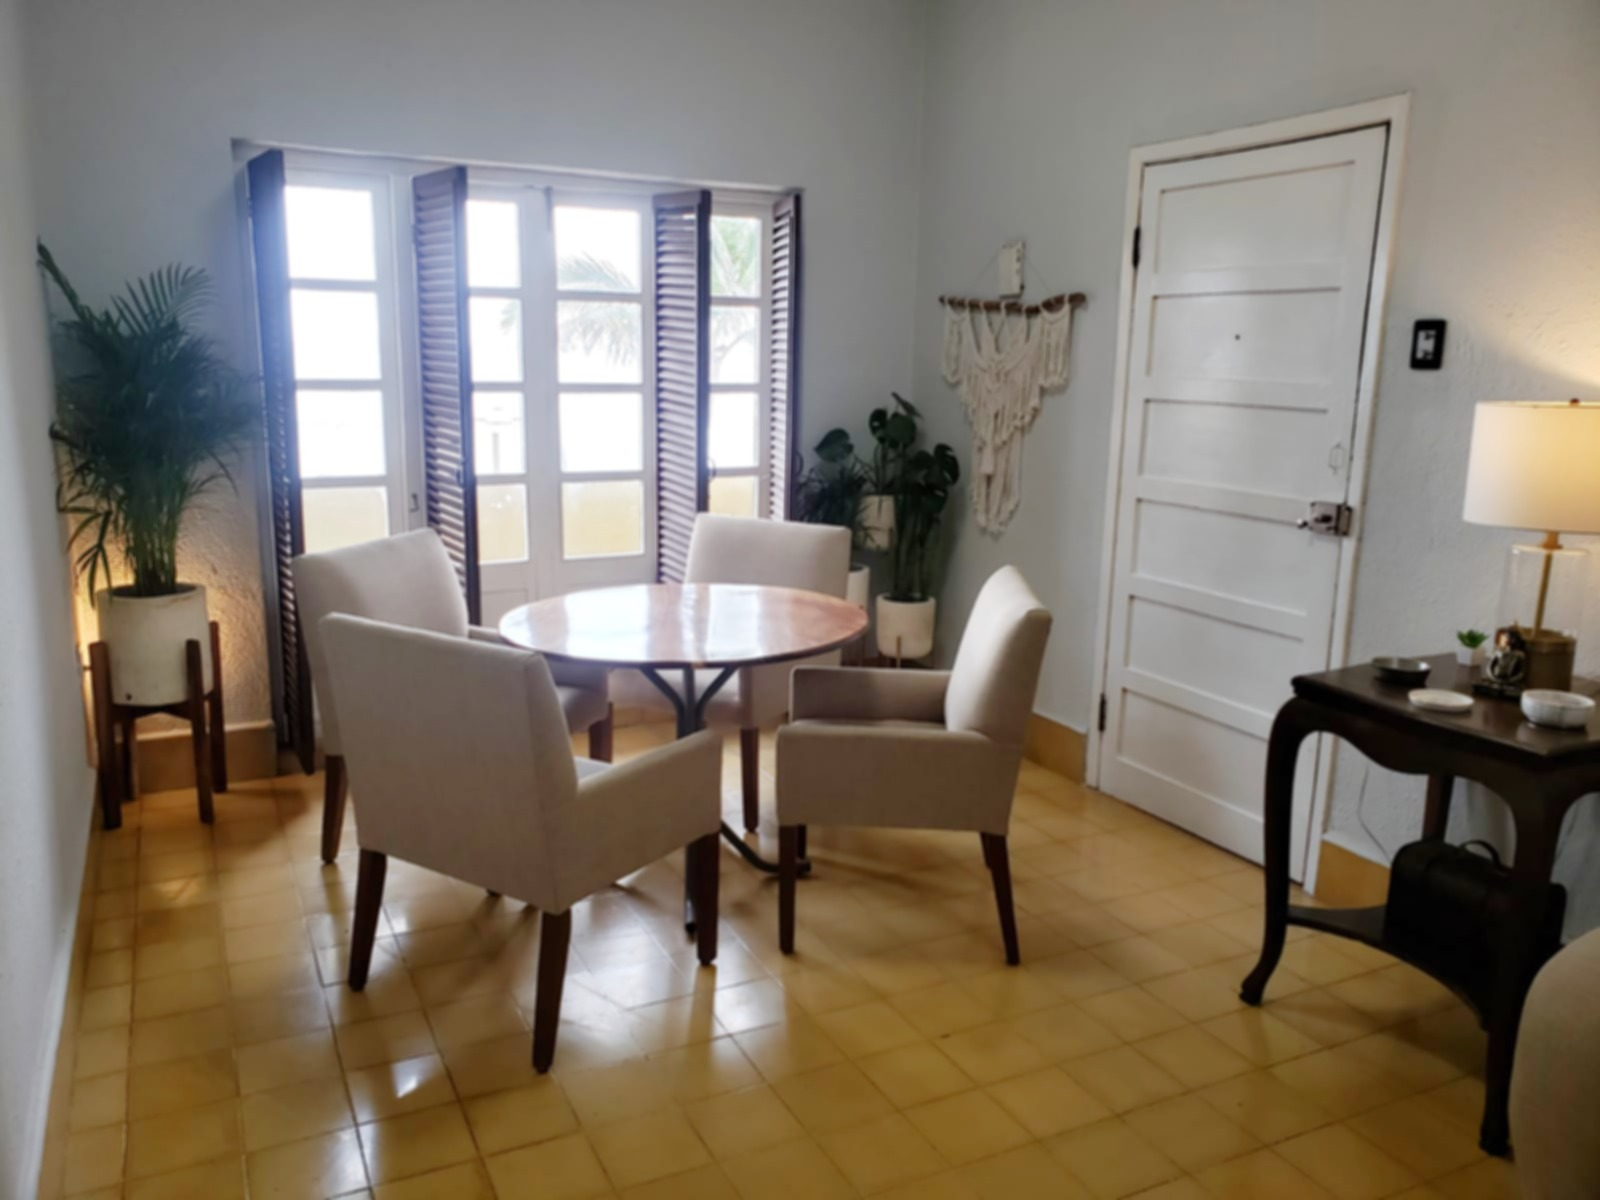 Dining table with seating for 4 people.